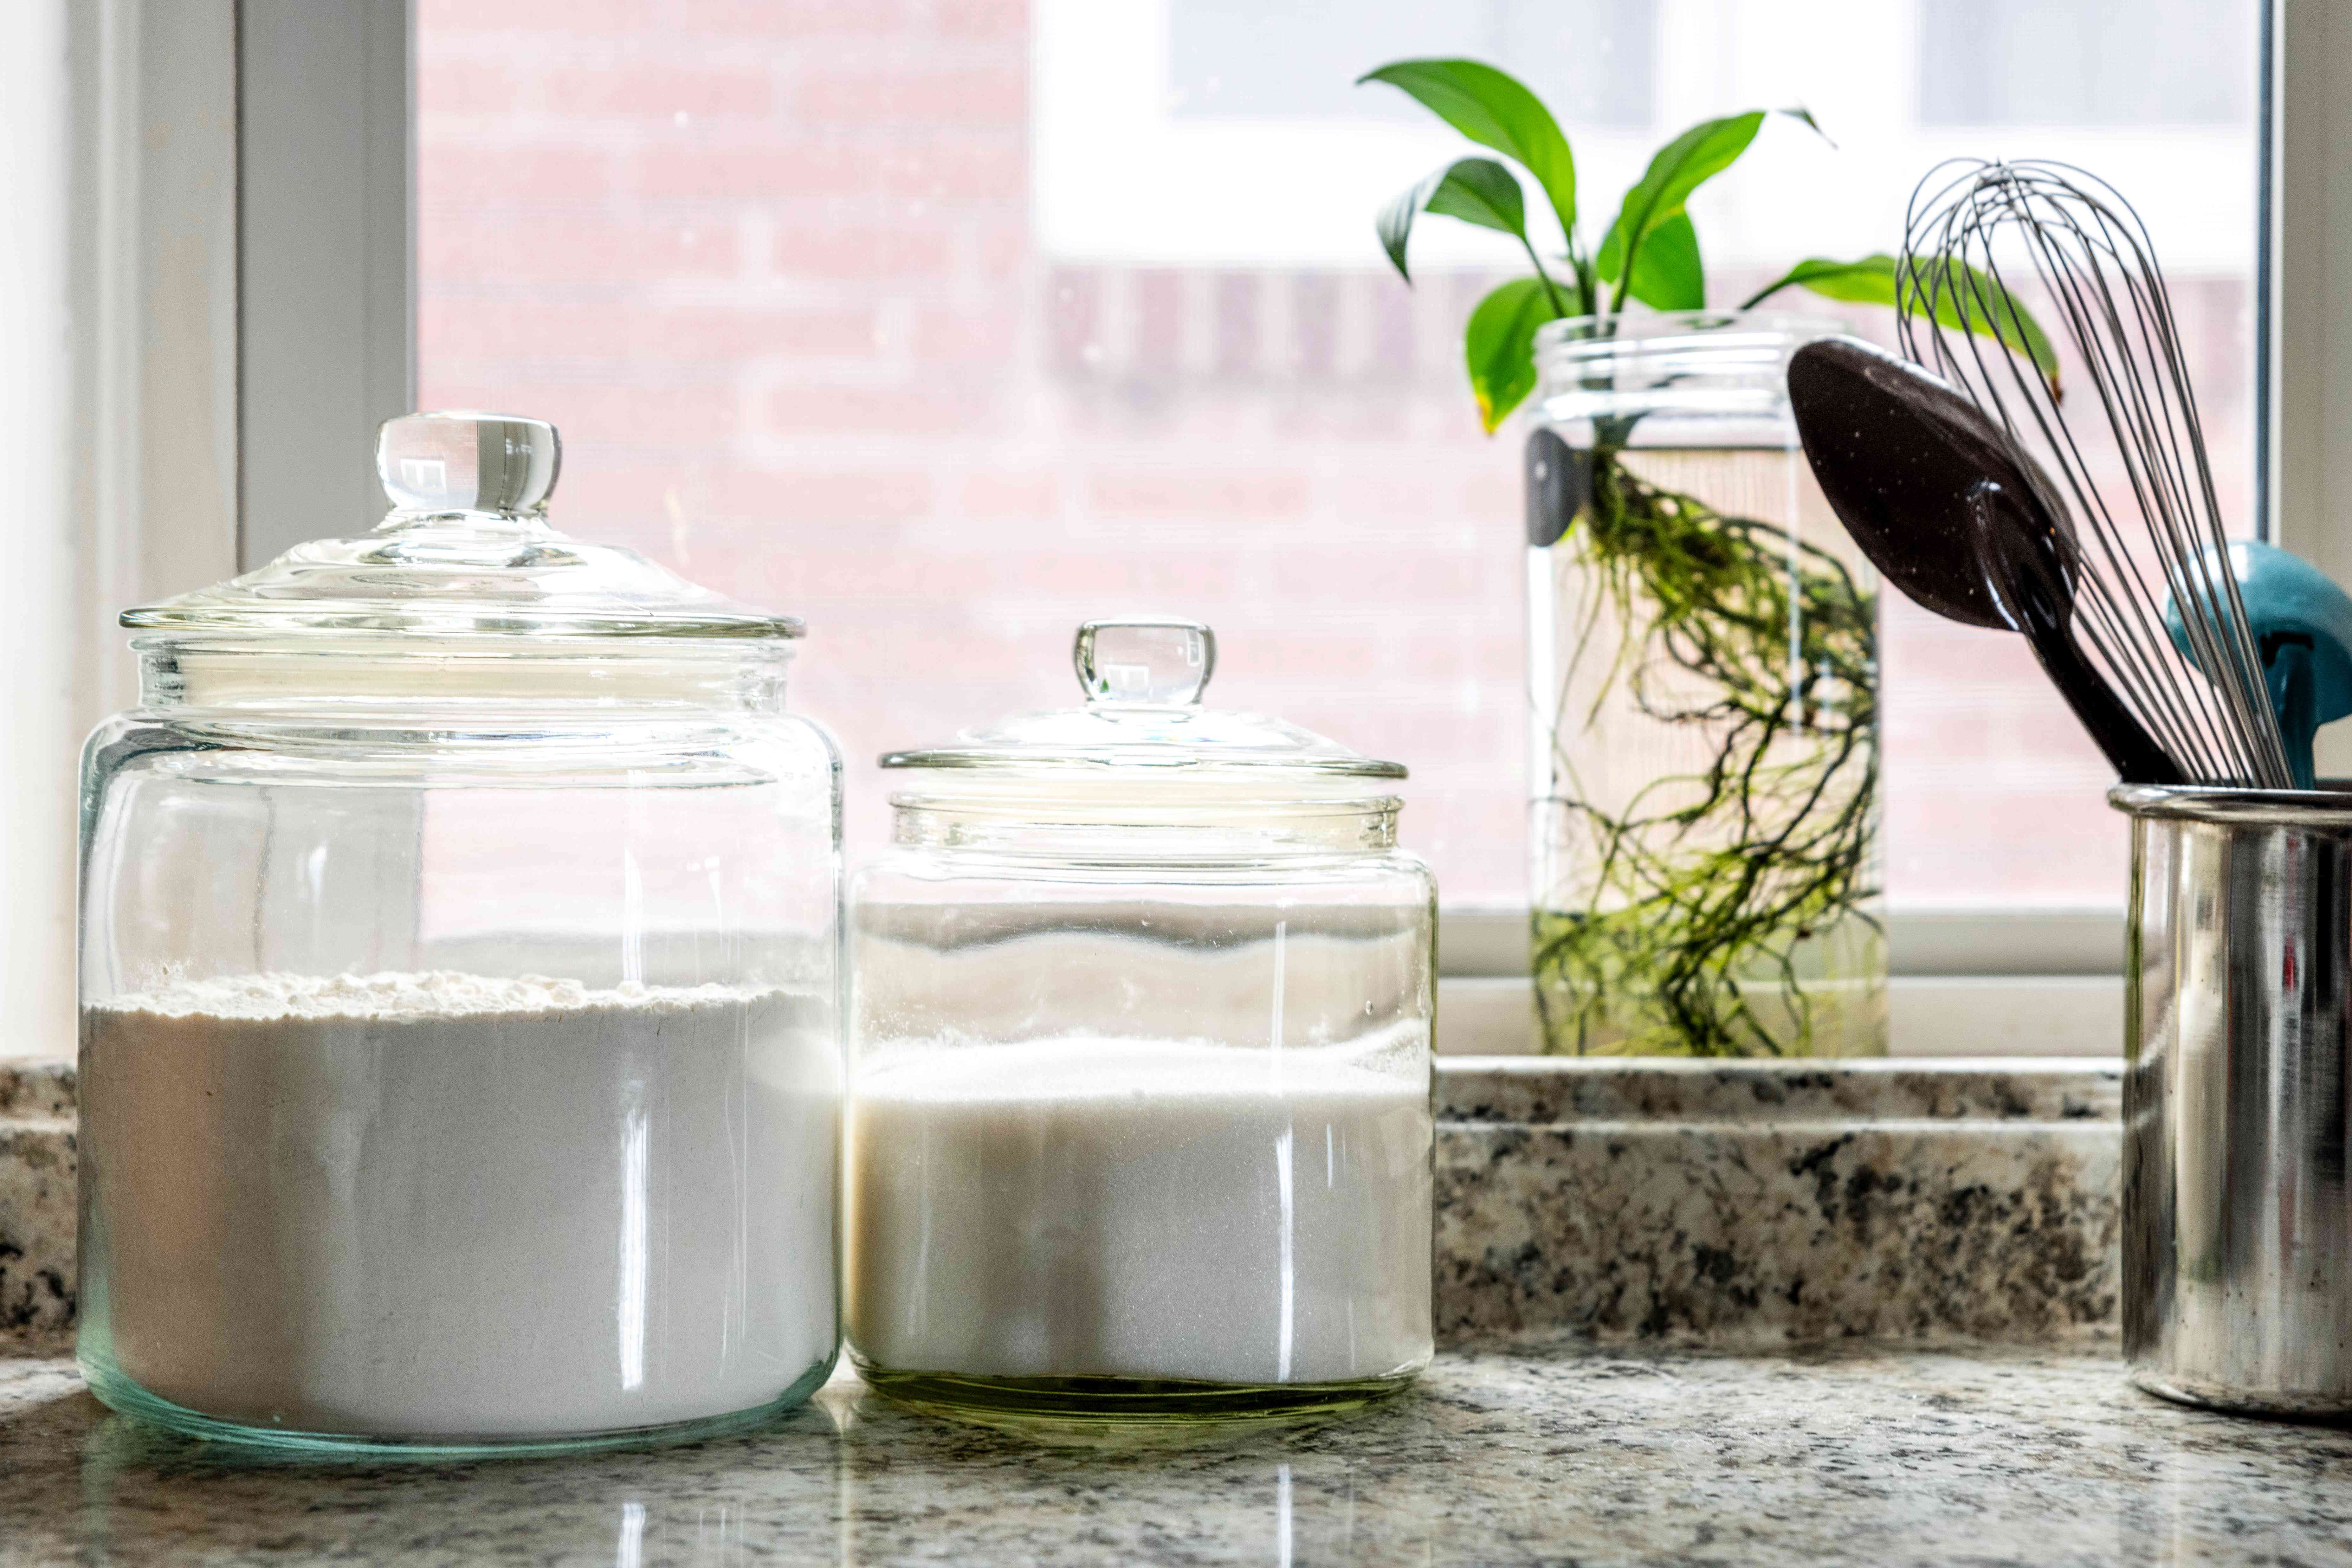 Flour and sugar sealed in glass containers on kitchen counter top with plant and utensils by window